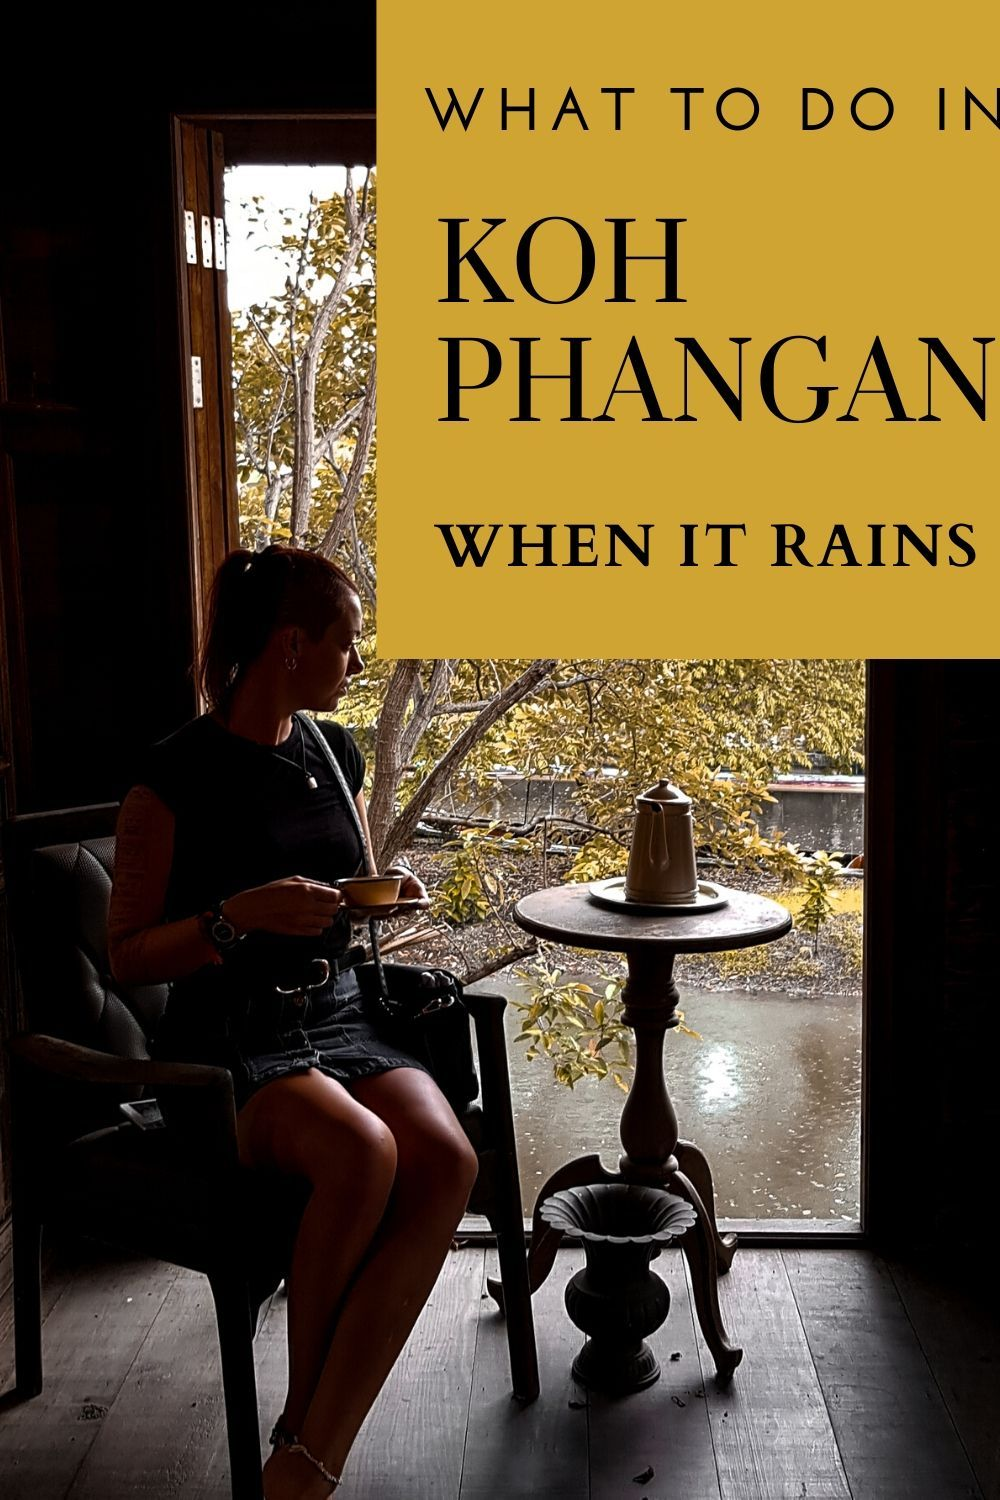 When it rains in Koh Phangan it rains hard and can last for days. Considering most activities in Koh Phangan are outdoors, there just doesn't seem to be much to do on Koh Phangan when it does rains. But check out our list for indoor activities !   #kohphangan #thailand #thailandtravel #travelthailand #bestdestination #rainydays #itinerary #traveladviceandtips #adventuretravel #islandstyle